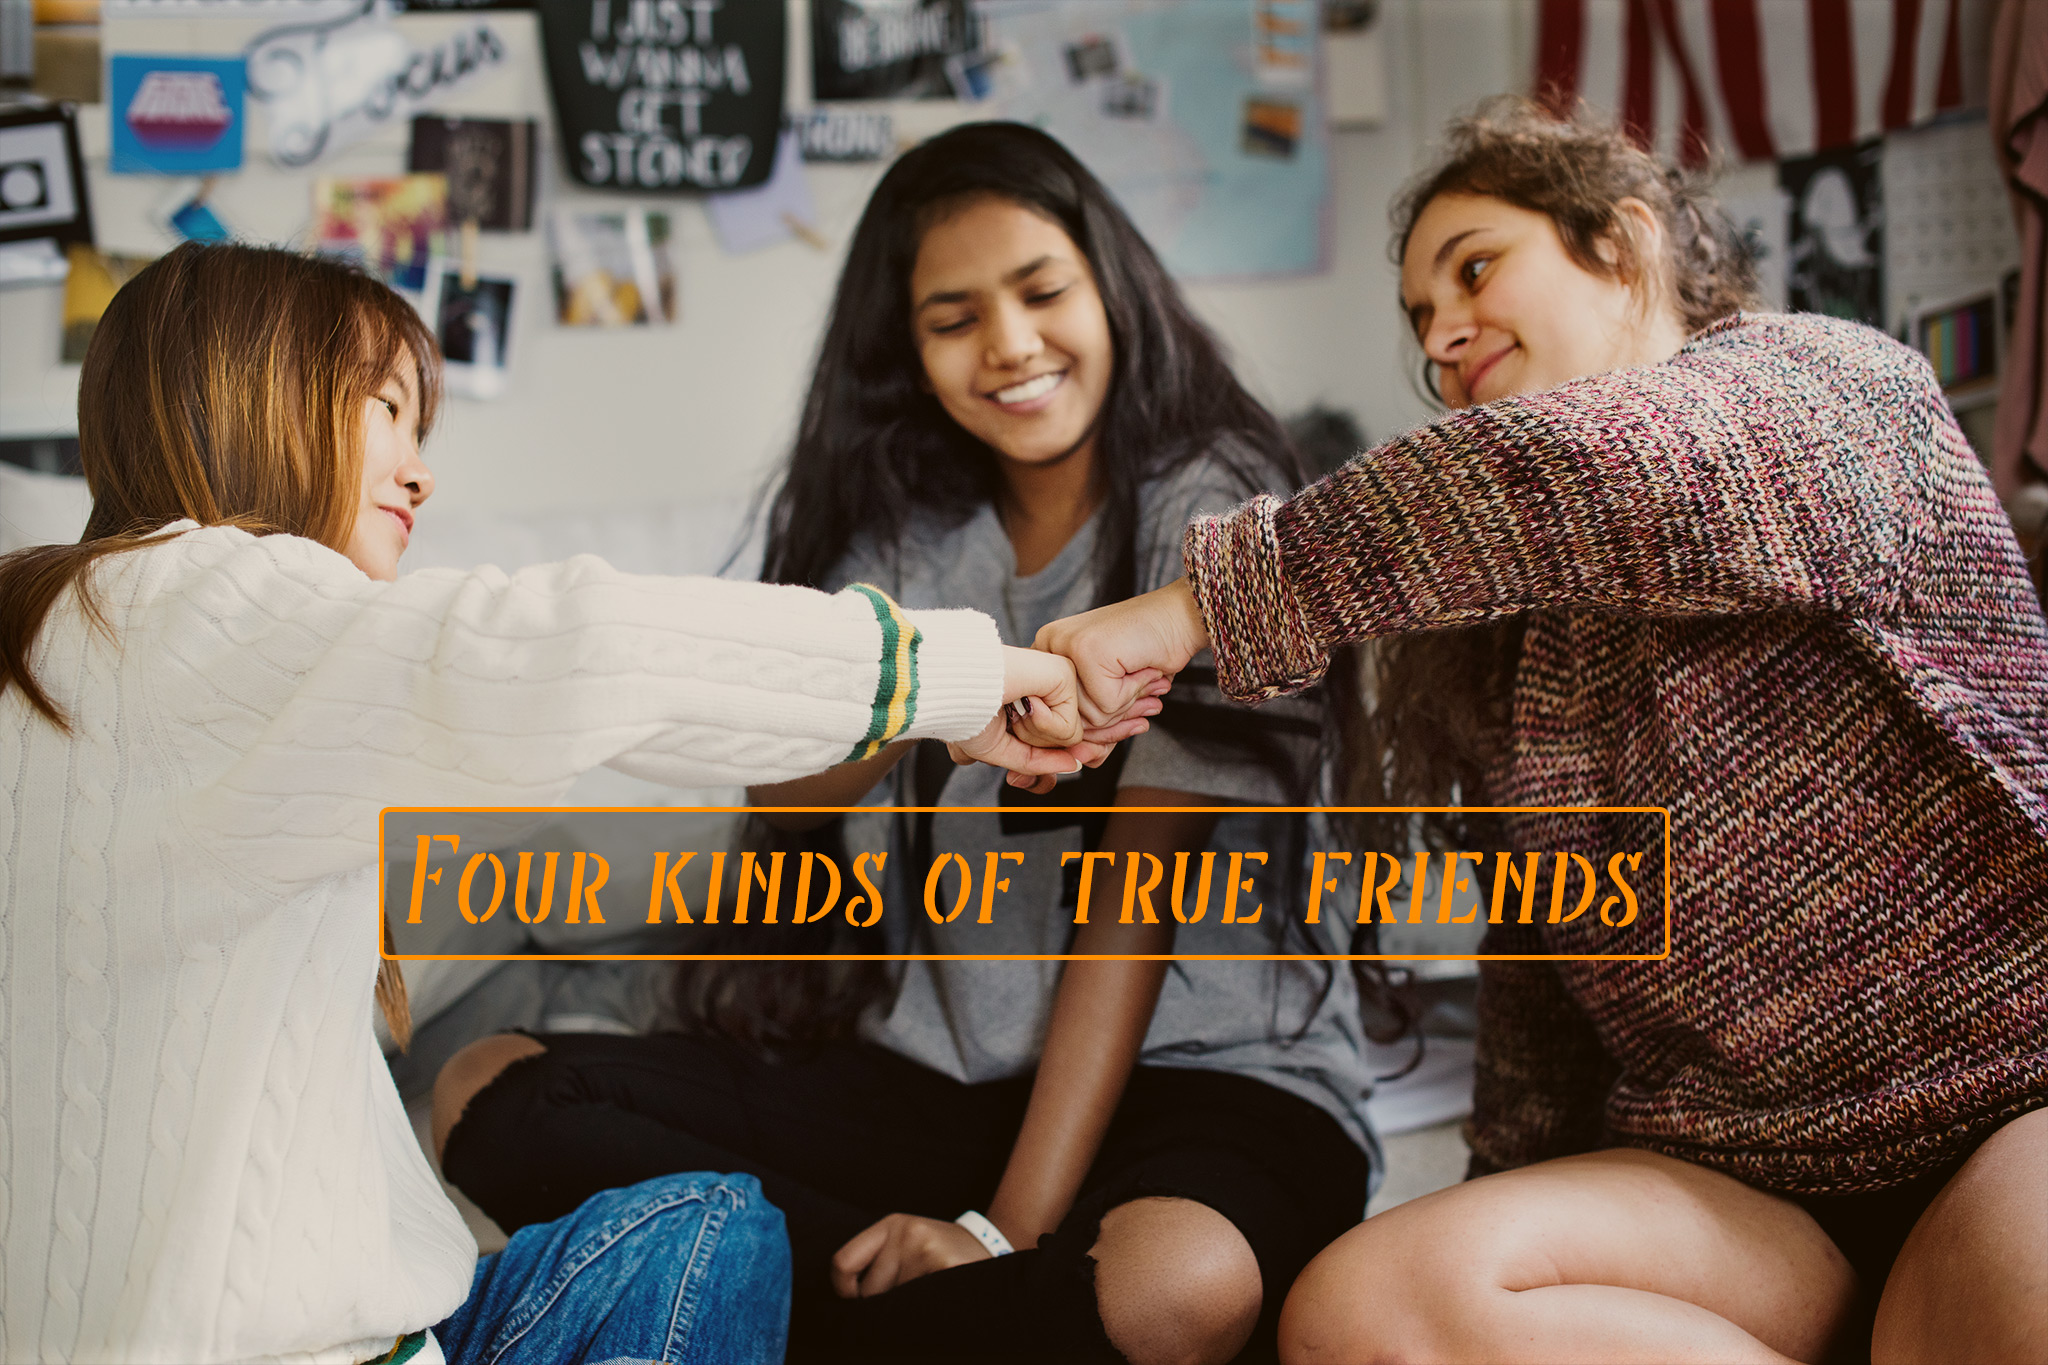 Four kinds of true friends